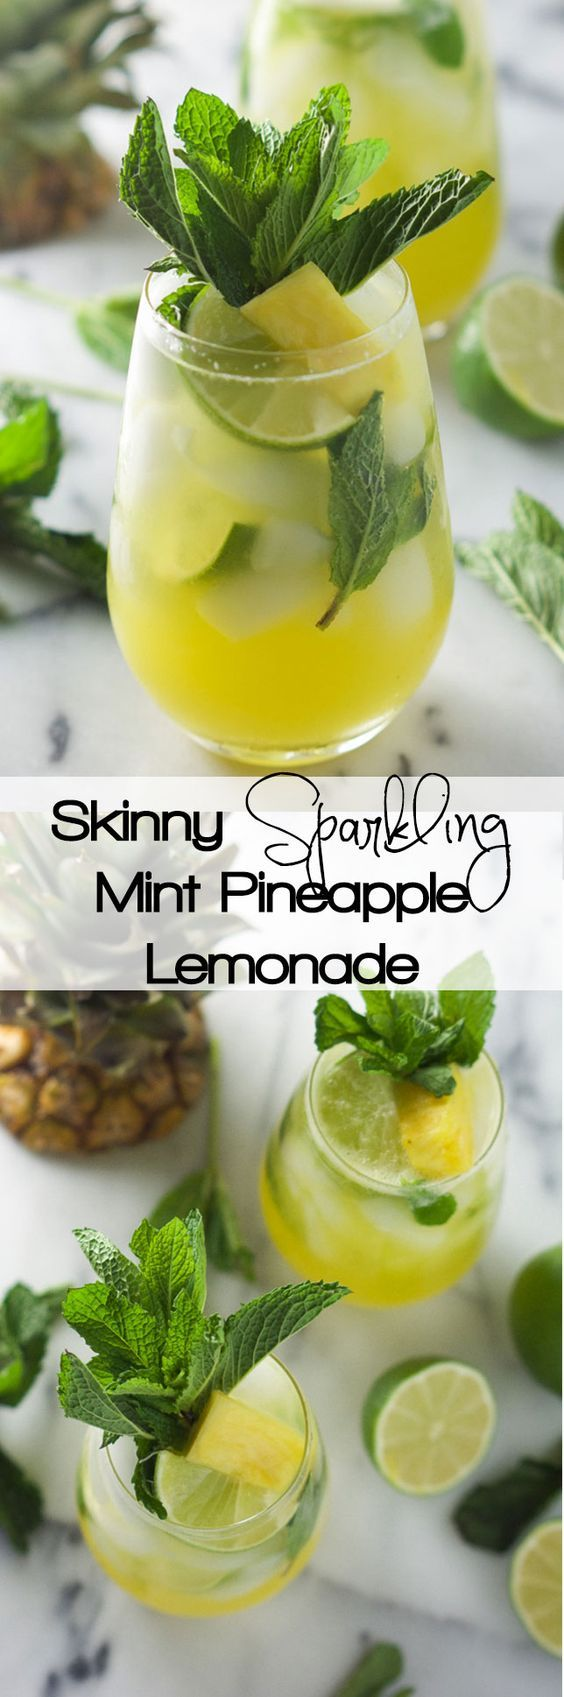 Skinny Sparkling Mint Pineapple Lemonade